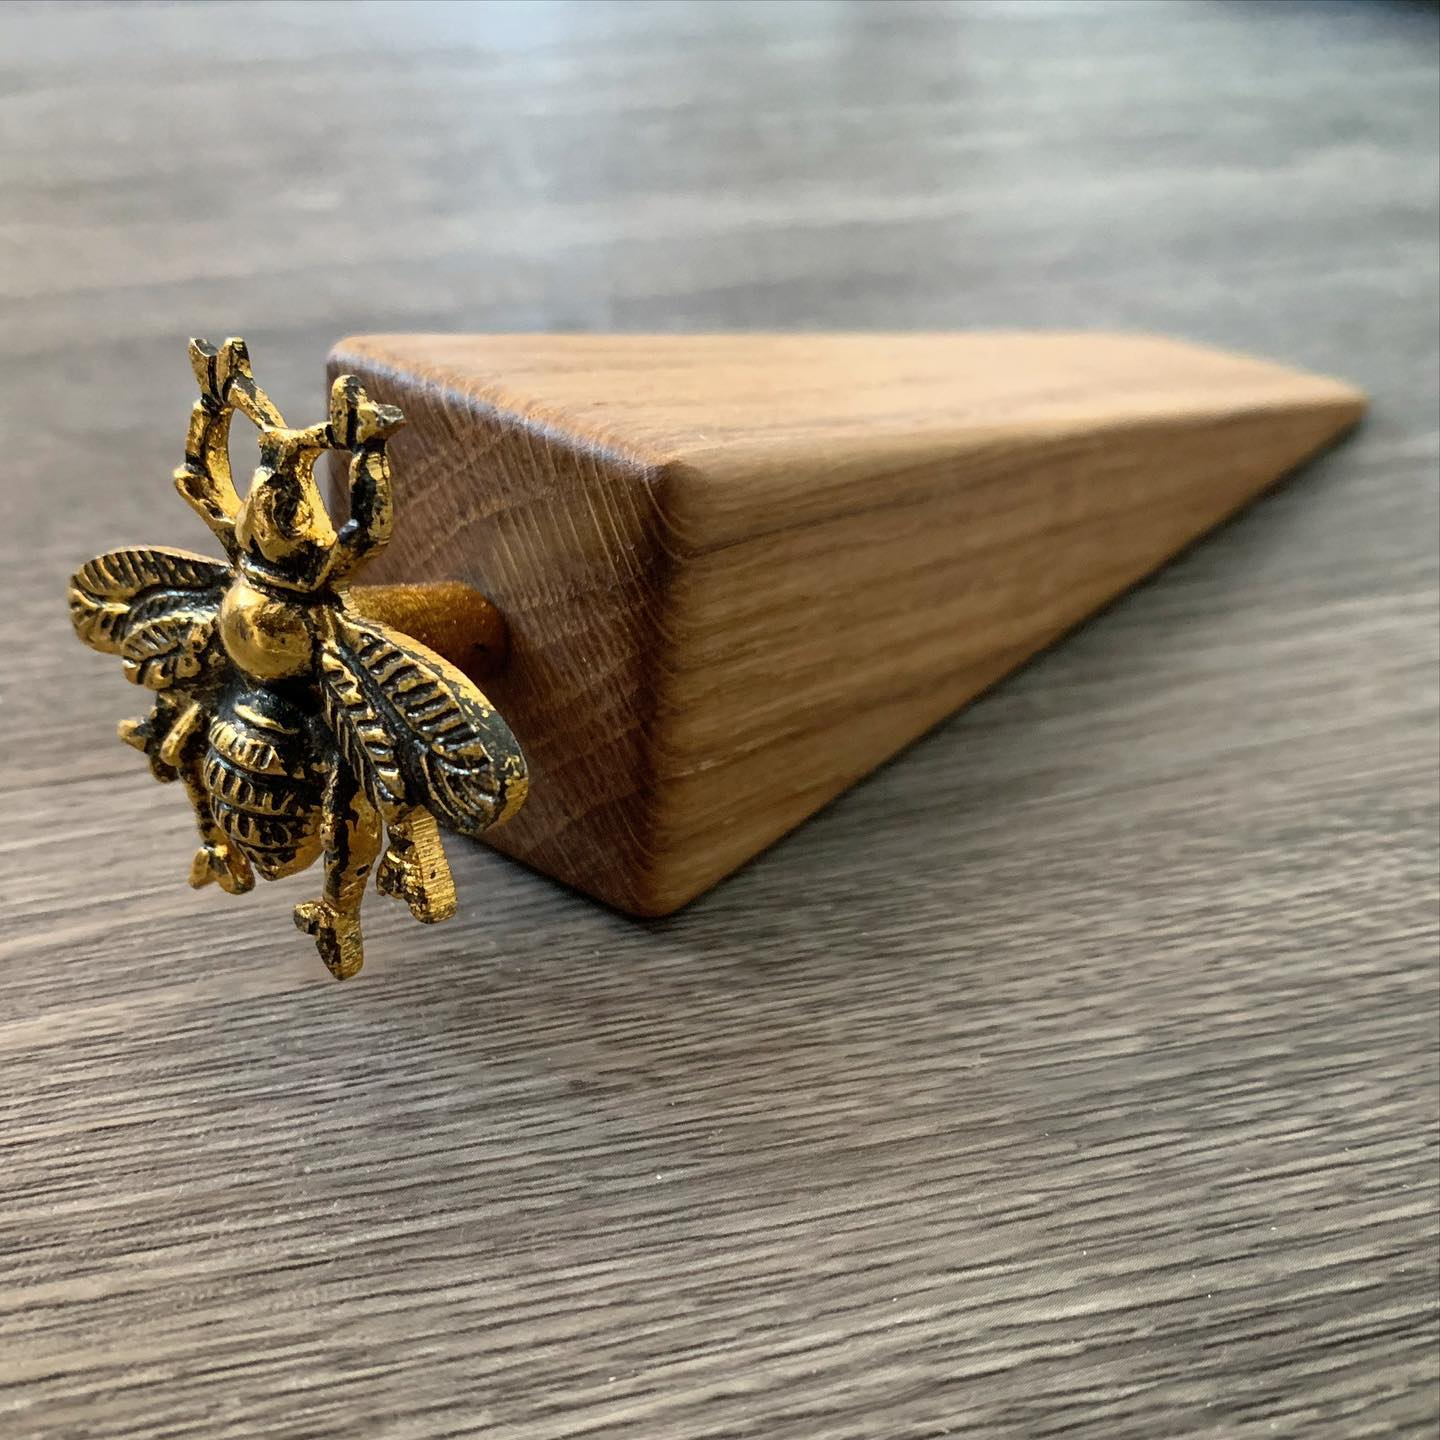 Now available online!  Bzzzzzz  ...#beehappy #bees #doorwedge #gold #oak #handcrafted #homewares #gingerandtweed #shopindependent #shophandmade